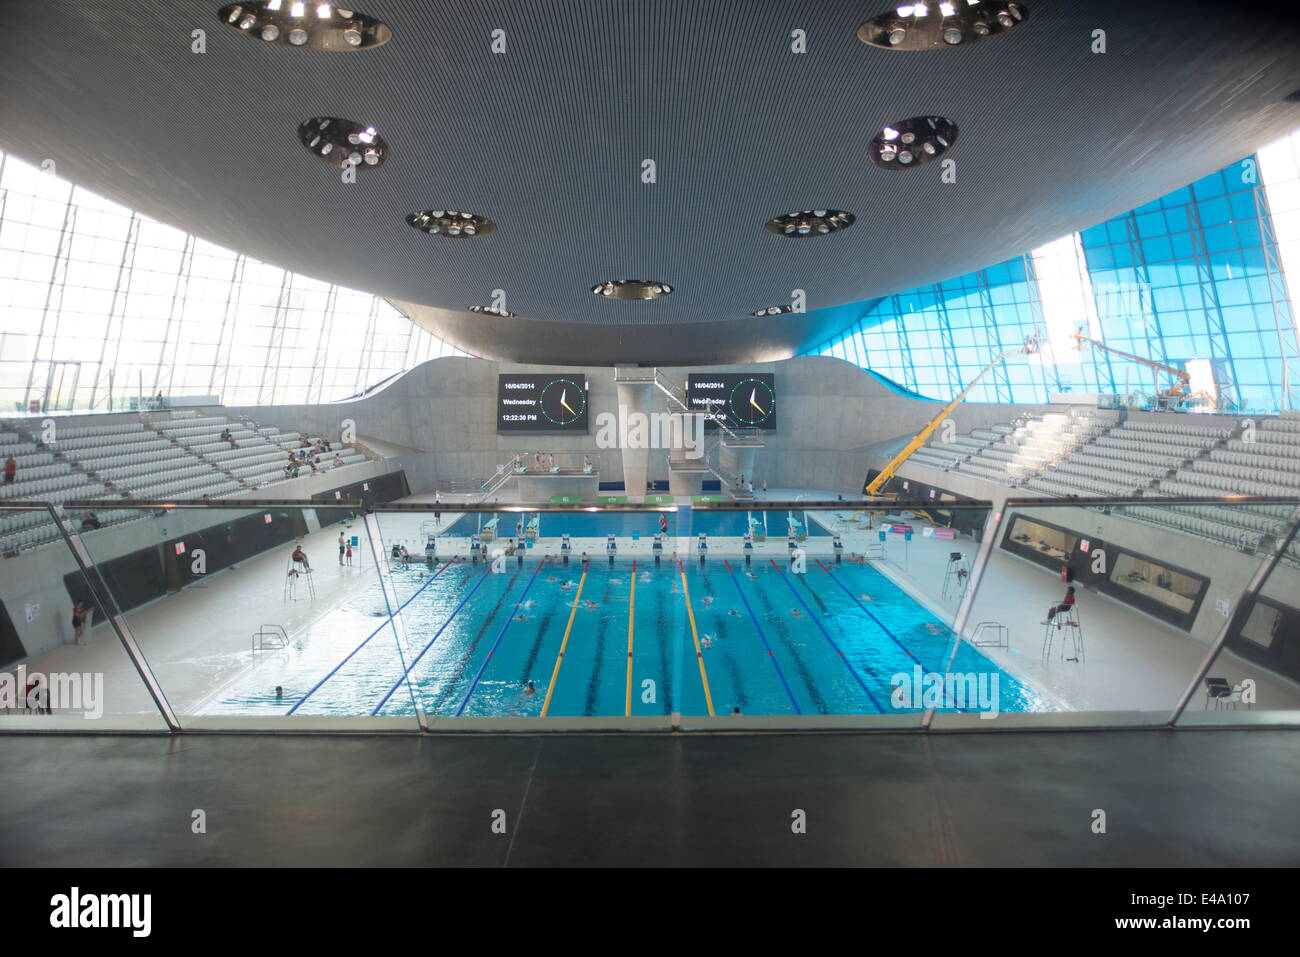 The Aquatic Centre Queen Elizabeth Olympic Park Stratford London Stock Photo Royalty Free